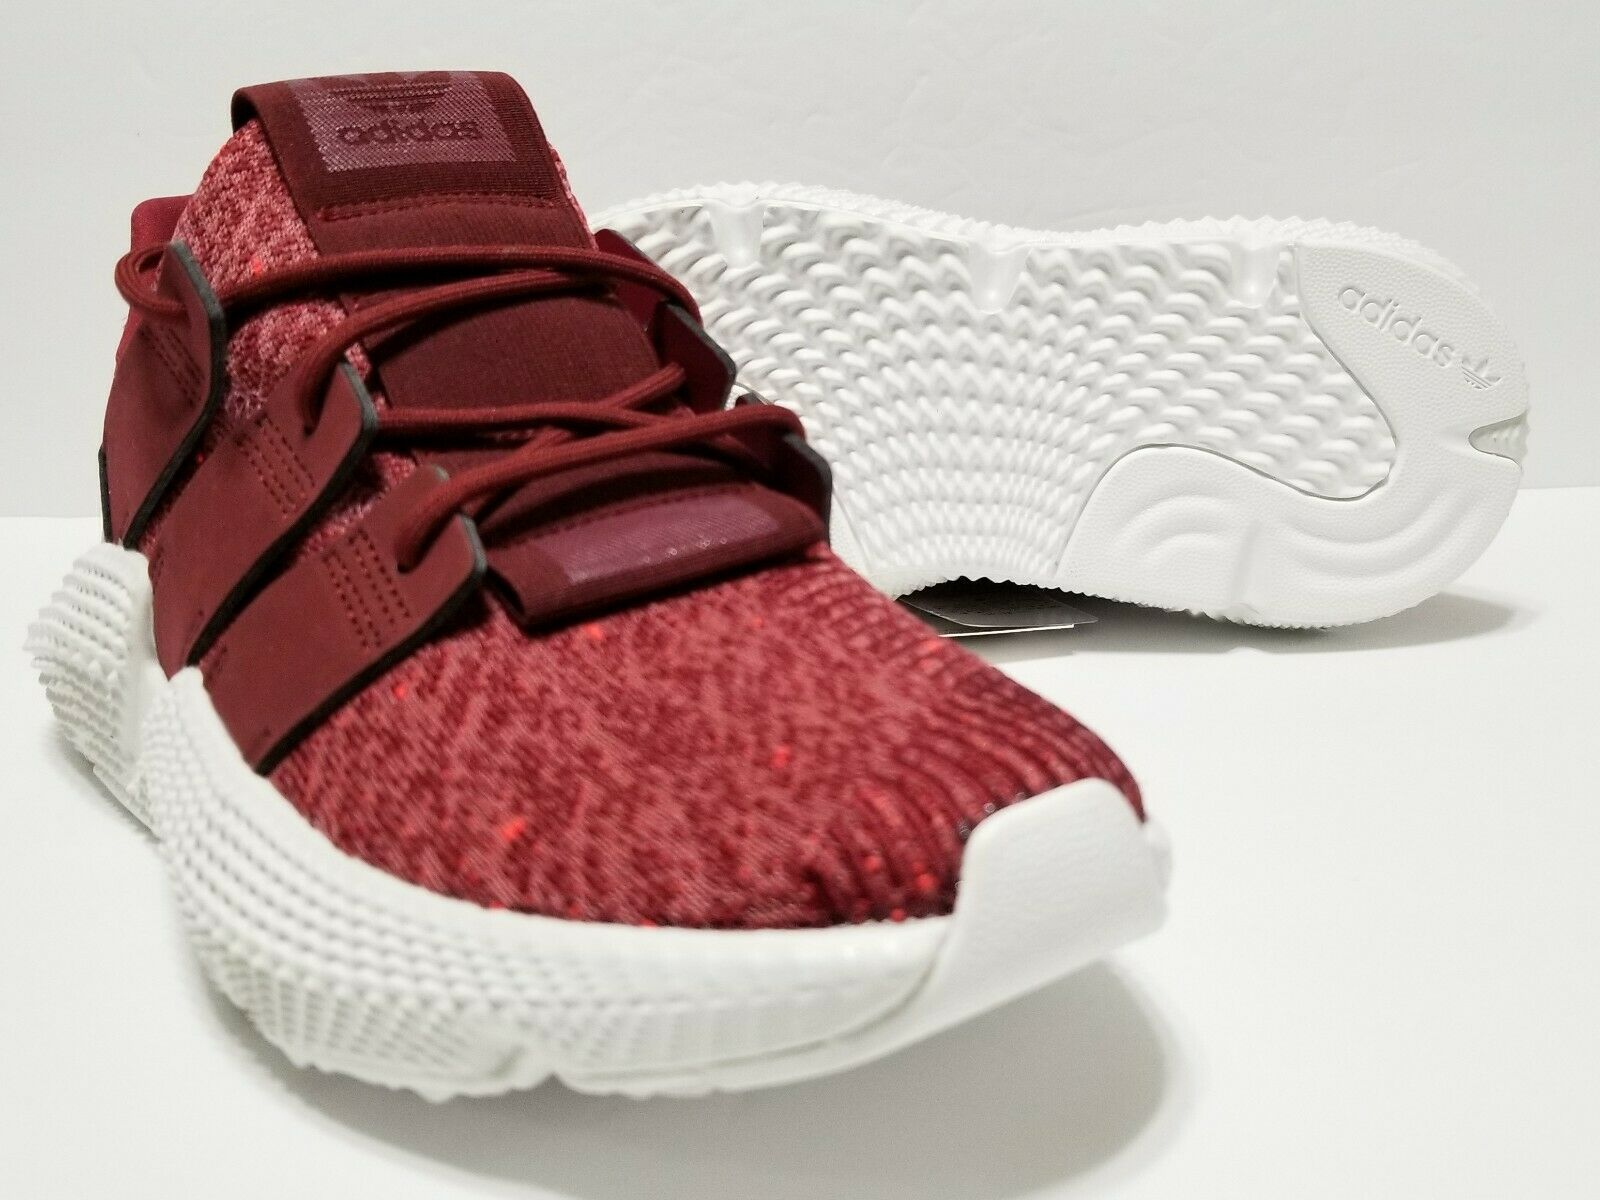 Adidas Originals Prophere Womens New New New Trace Maroon Lifestyle Sneakers B37635 SZ 8 3b6c64